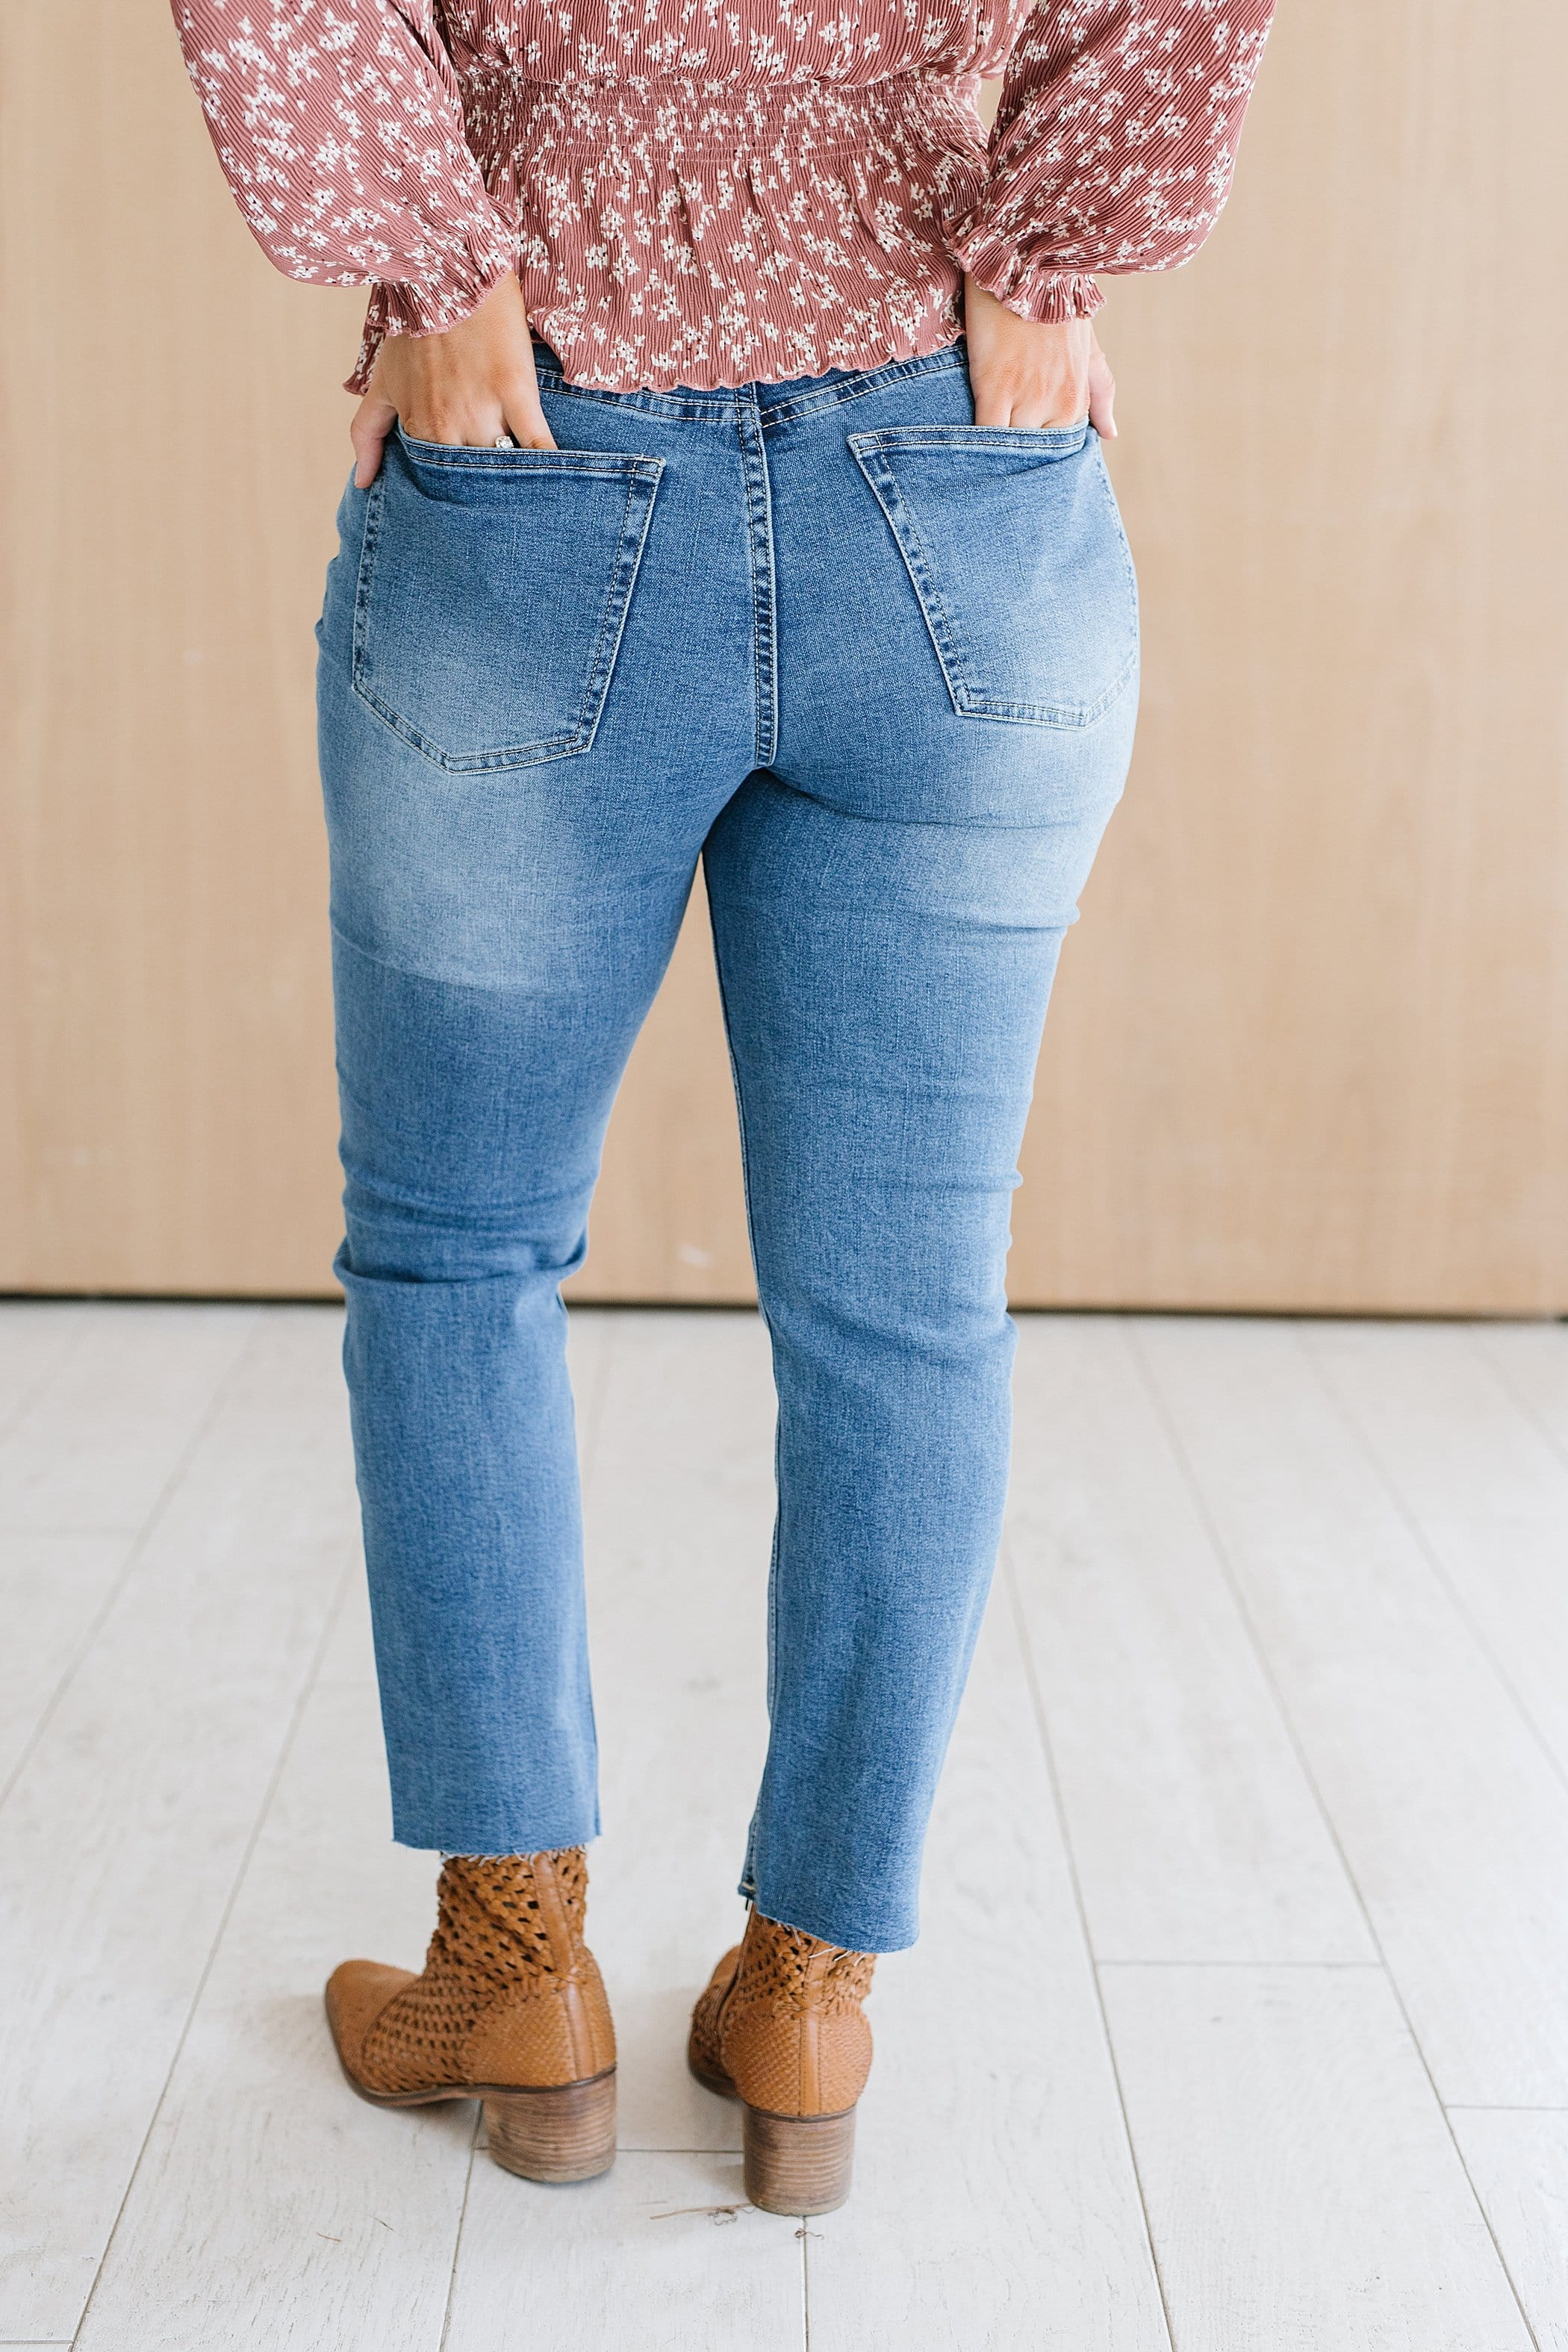 The Haymond High Rise Straight Leg Jeans in Medium Wash